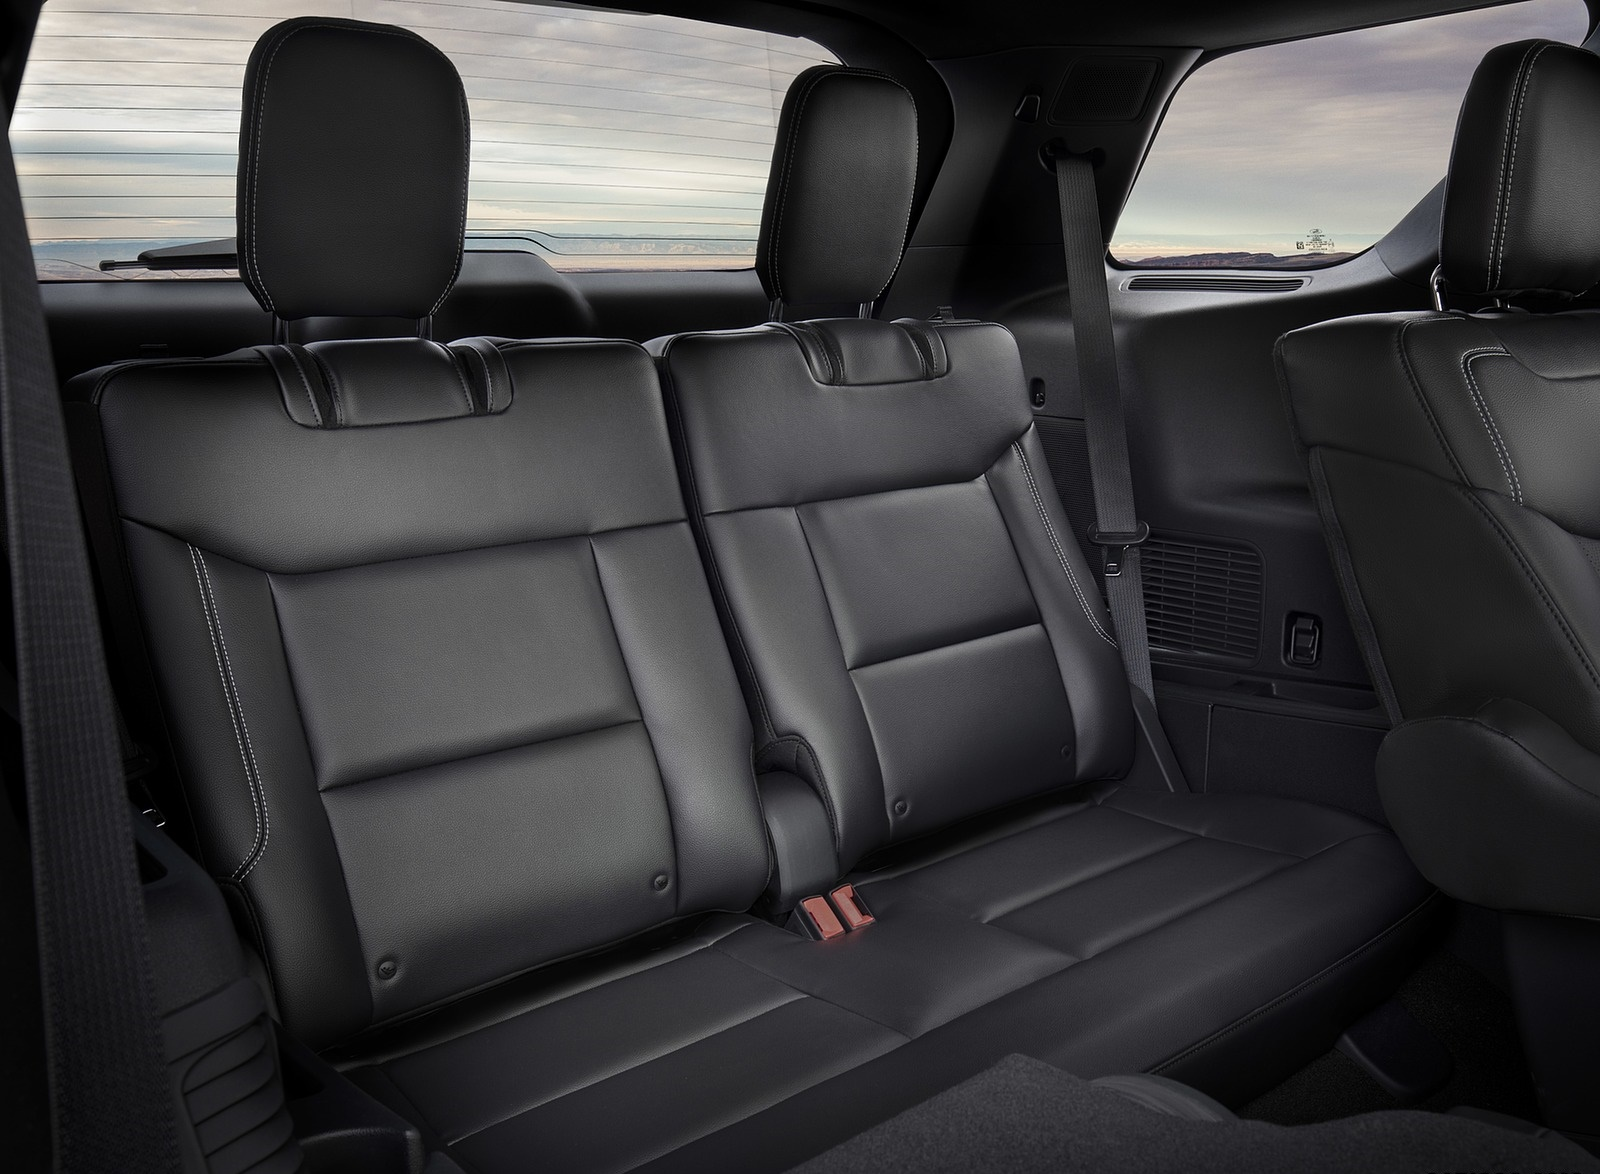 2020 Ford Explorer Interior Third Row Seats Wallpapers (15)